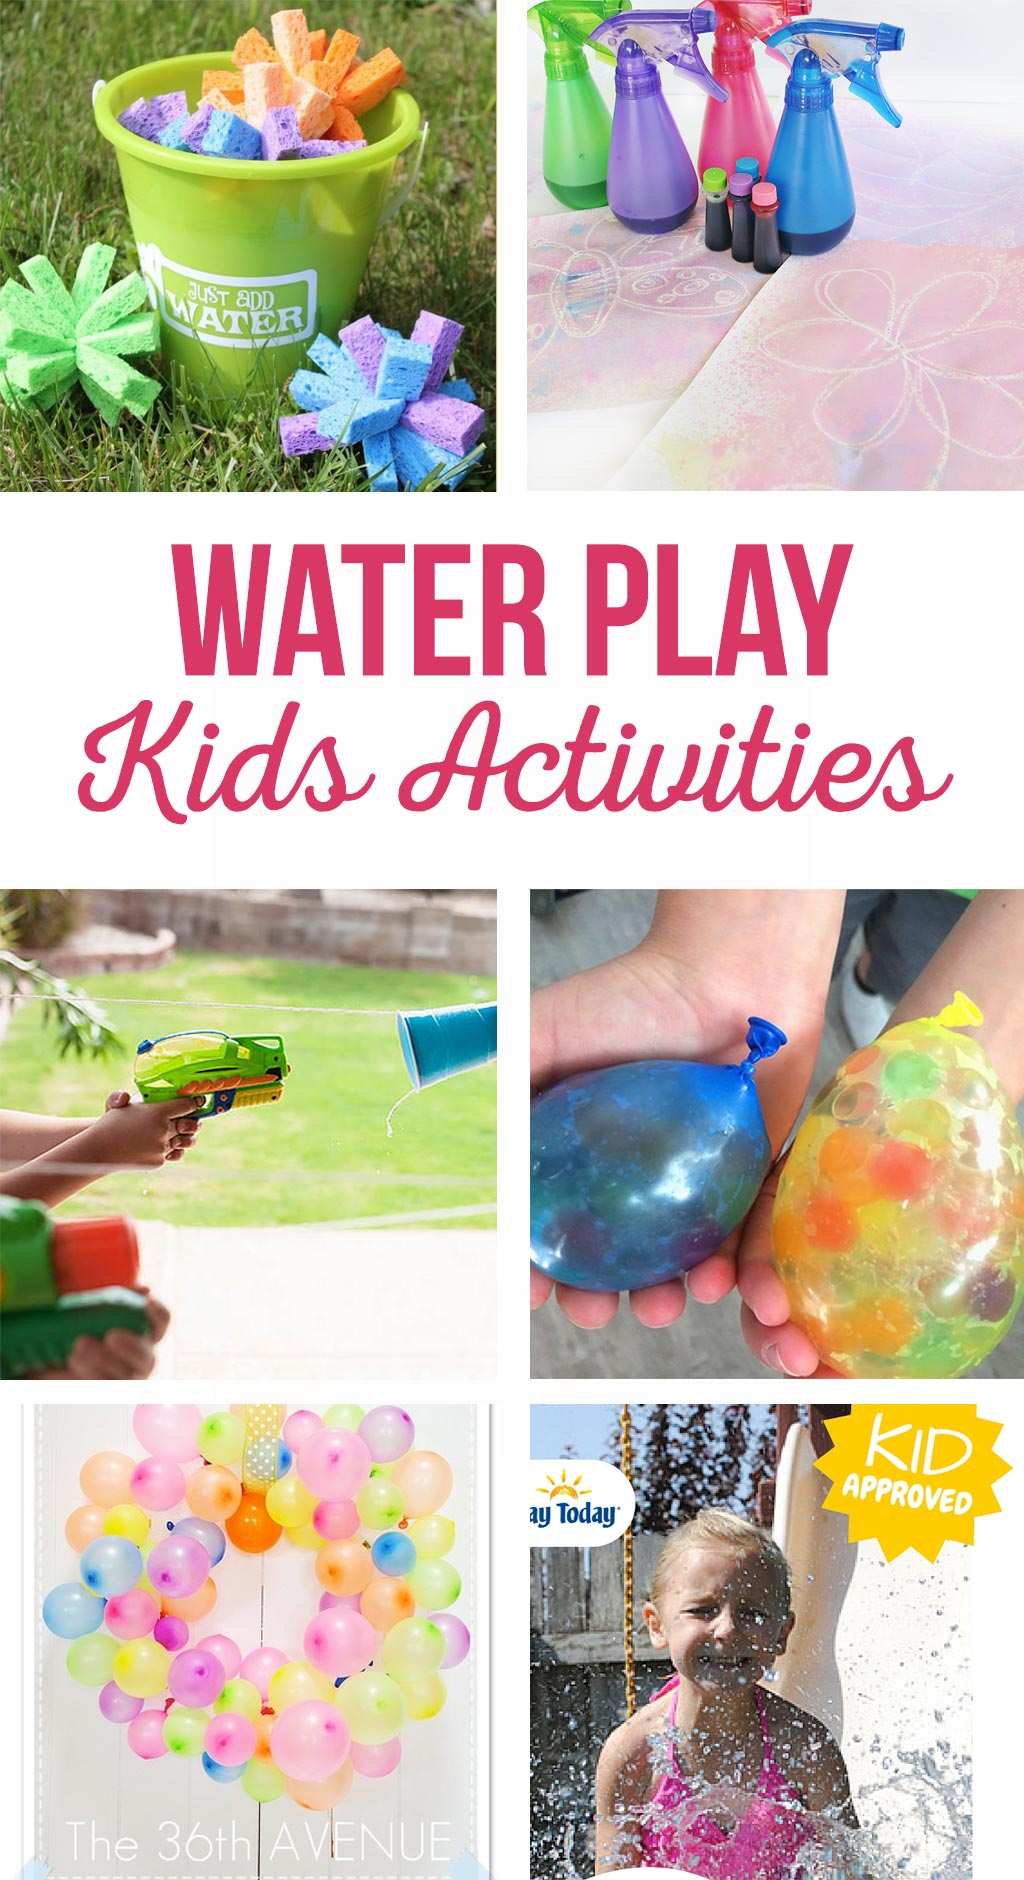 Water Play Kids Activities | Summer water games | Water balloon games, squirt gun races, and painting crafts